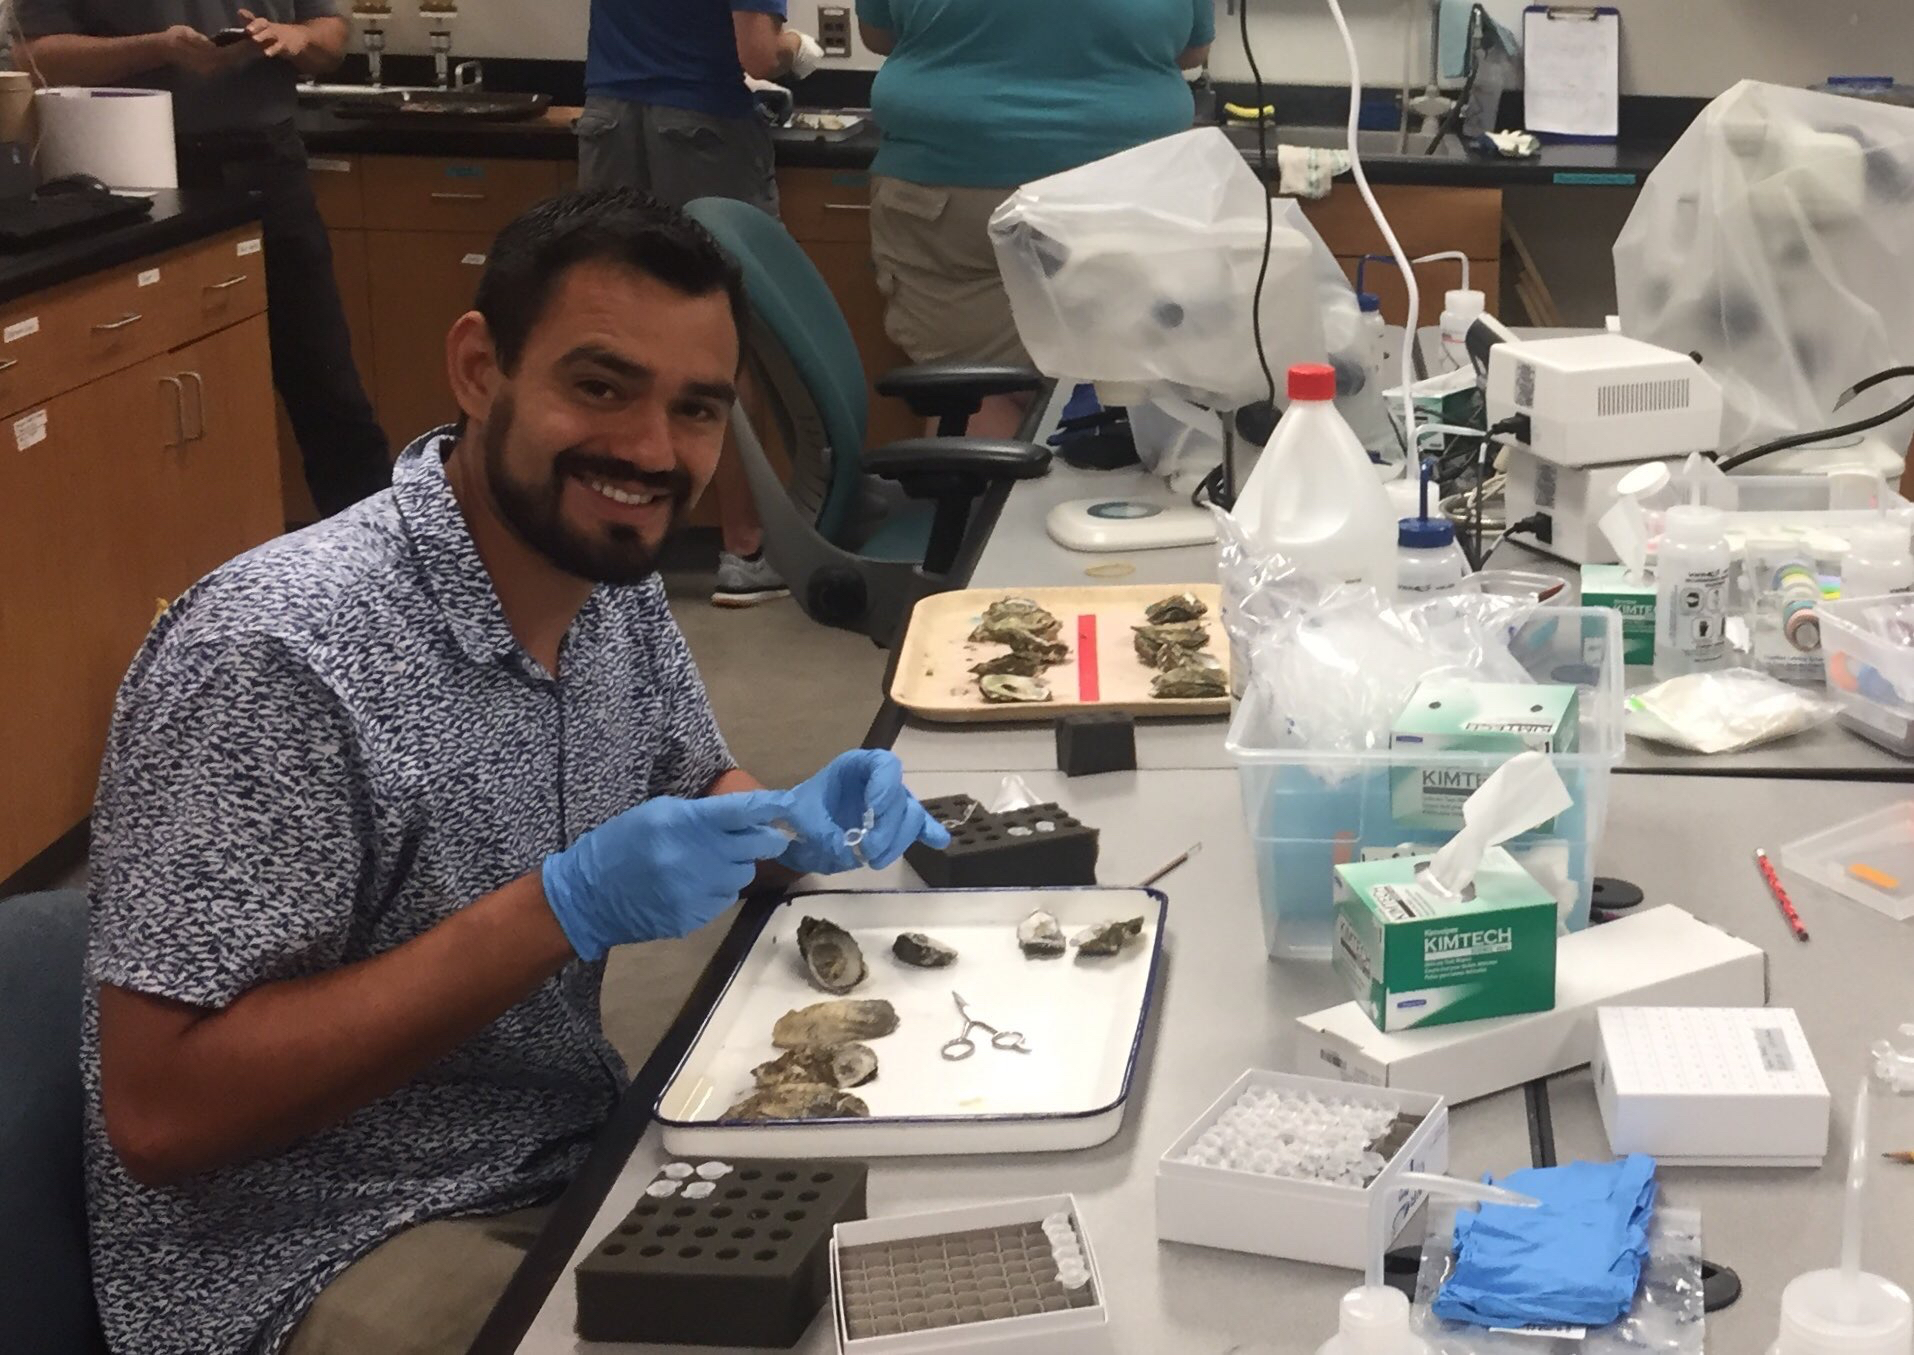 Kevin Johnson dissects oysters in the lab.